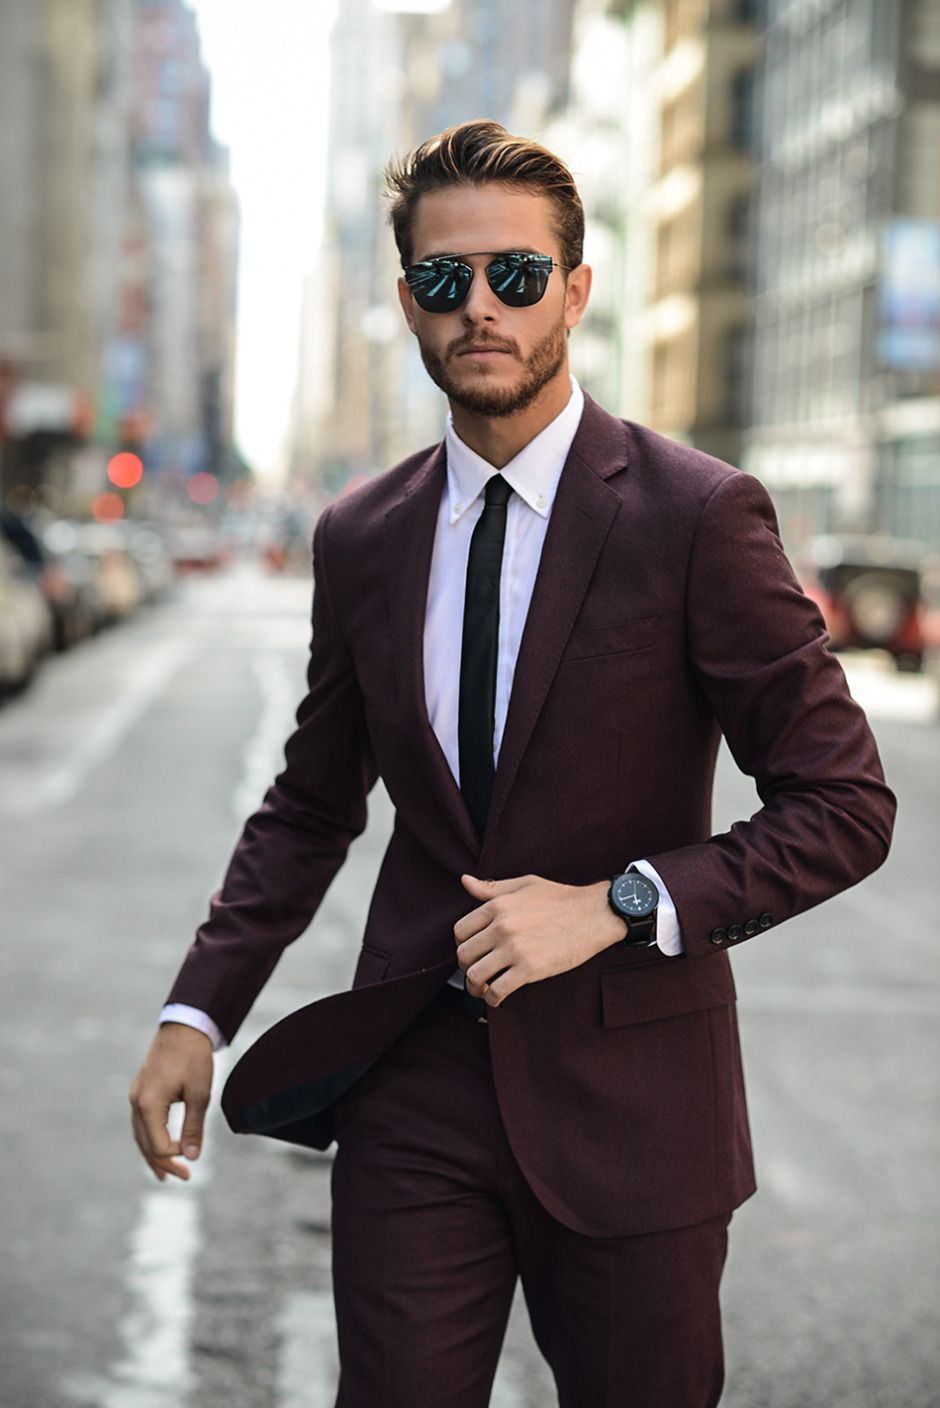 featuring: Vector watch , JCREW suit, topman tie, hugo boss shoes, DIOR  sunglasses, uniqlo shirt I wasn't able to fully make fashion week this  season due to ...